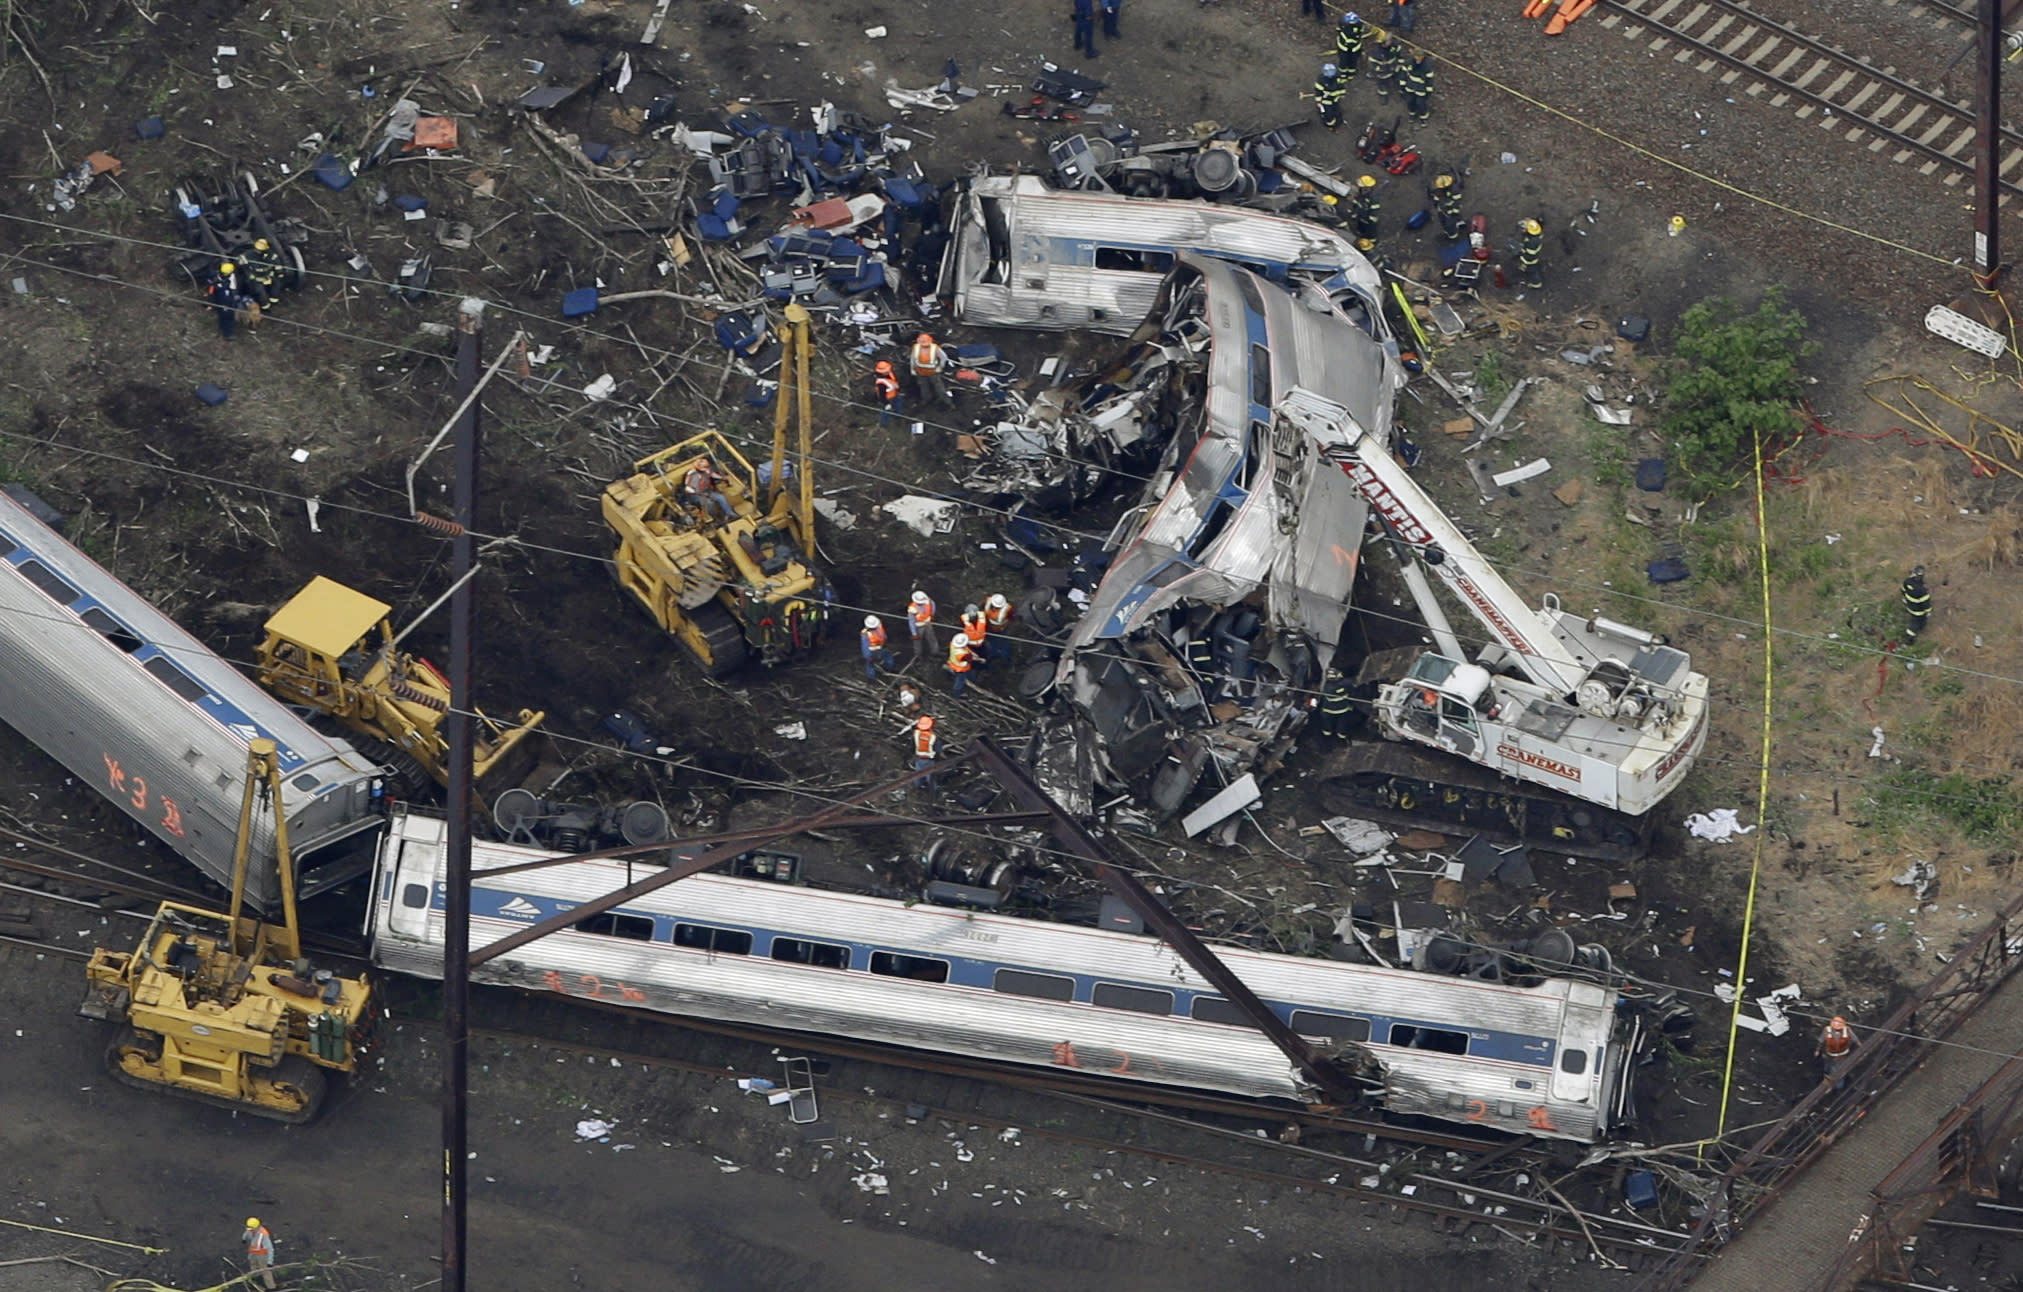 Feds trying to determine if Amtrak engineer was using phone